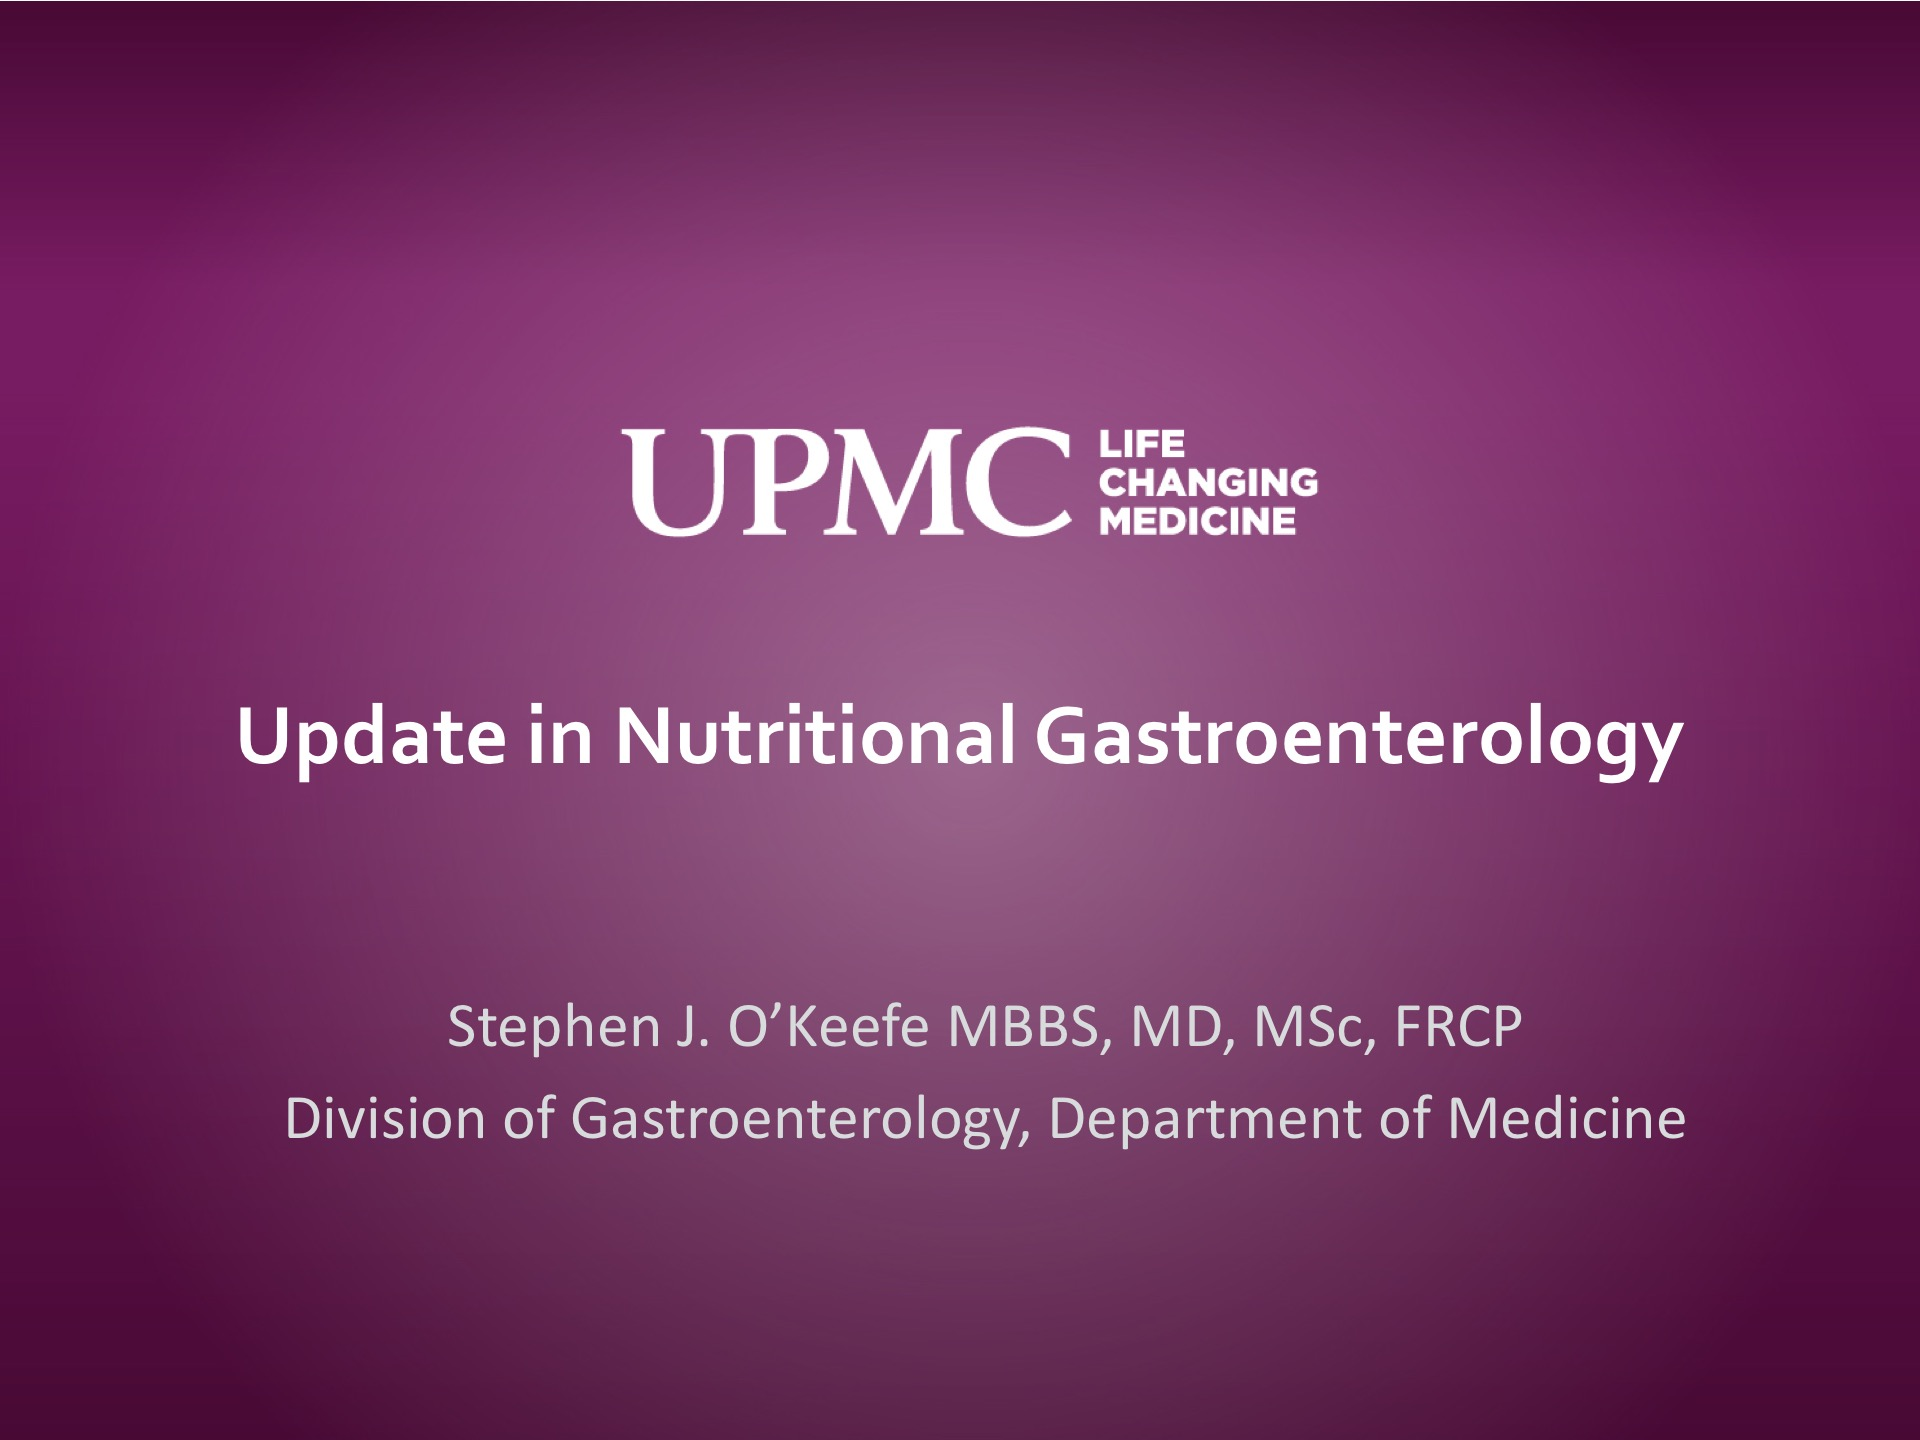 Update in Nutritional Gastroenterology (State of the Art Lecture) | UPMC